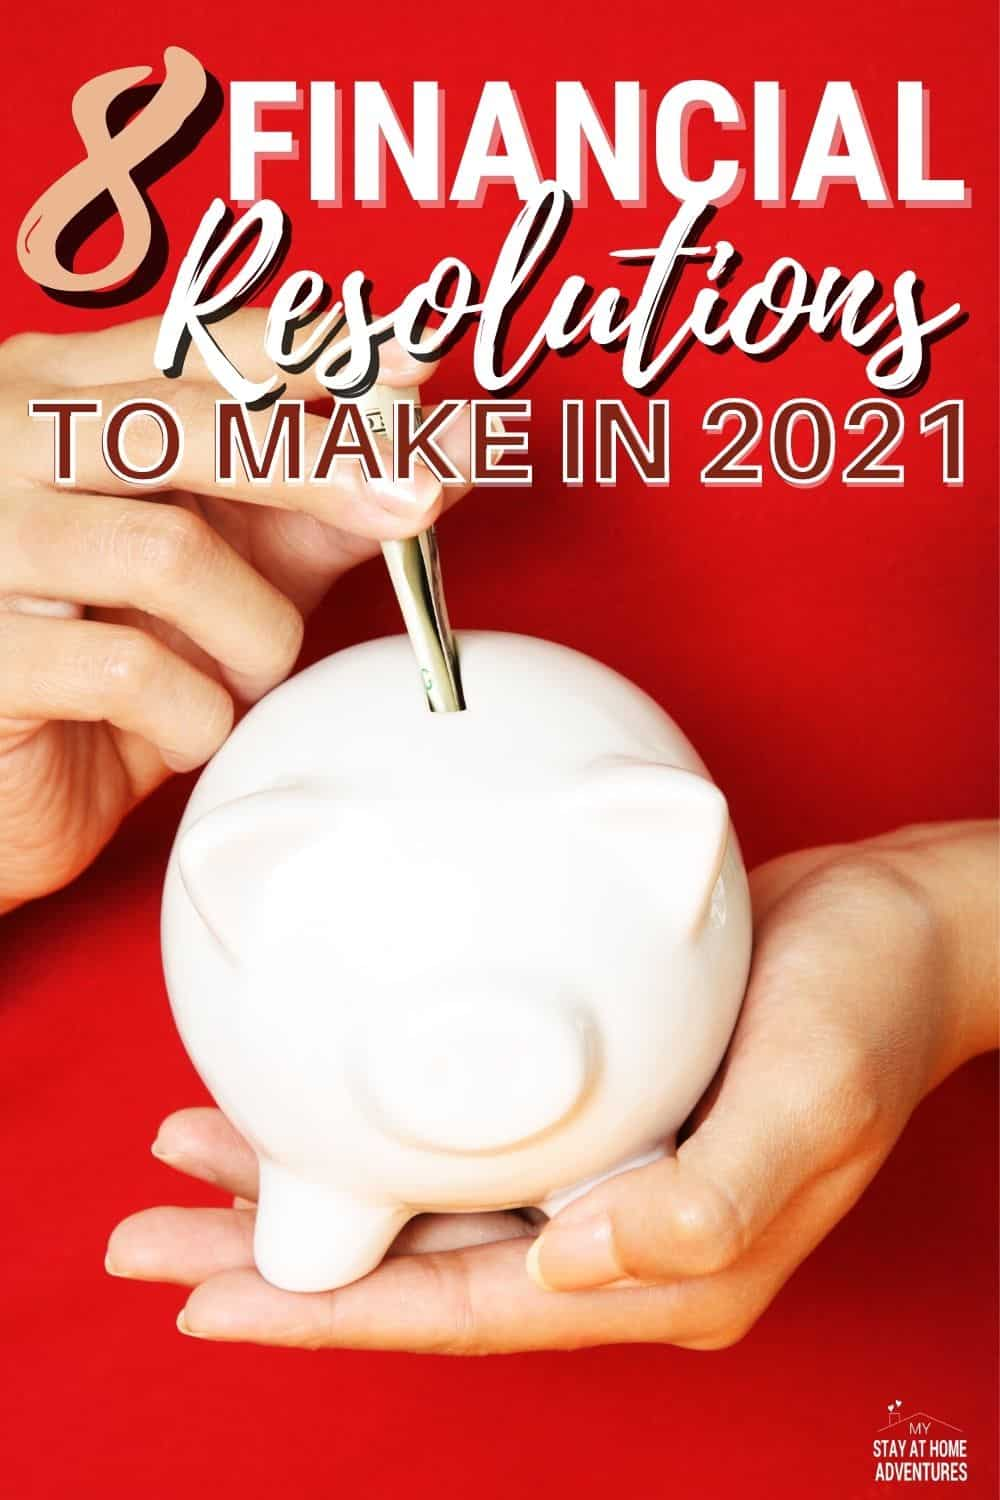 Check out 8 financial resolutions you can make in 2021 to make this year better for your financial health. Reduce your money stress this year. #2021 #financialgoals #moneymanagement via @mystayathome